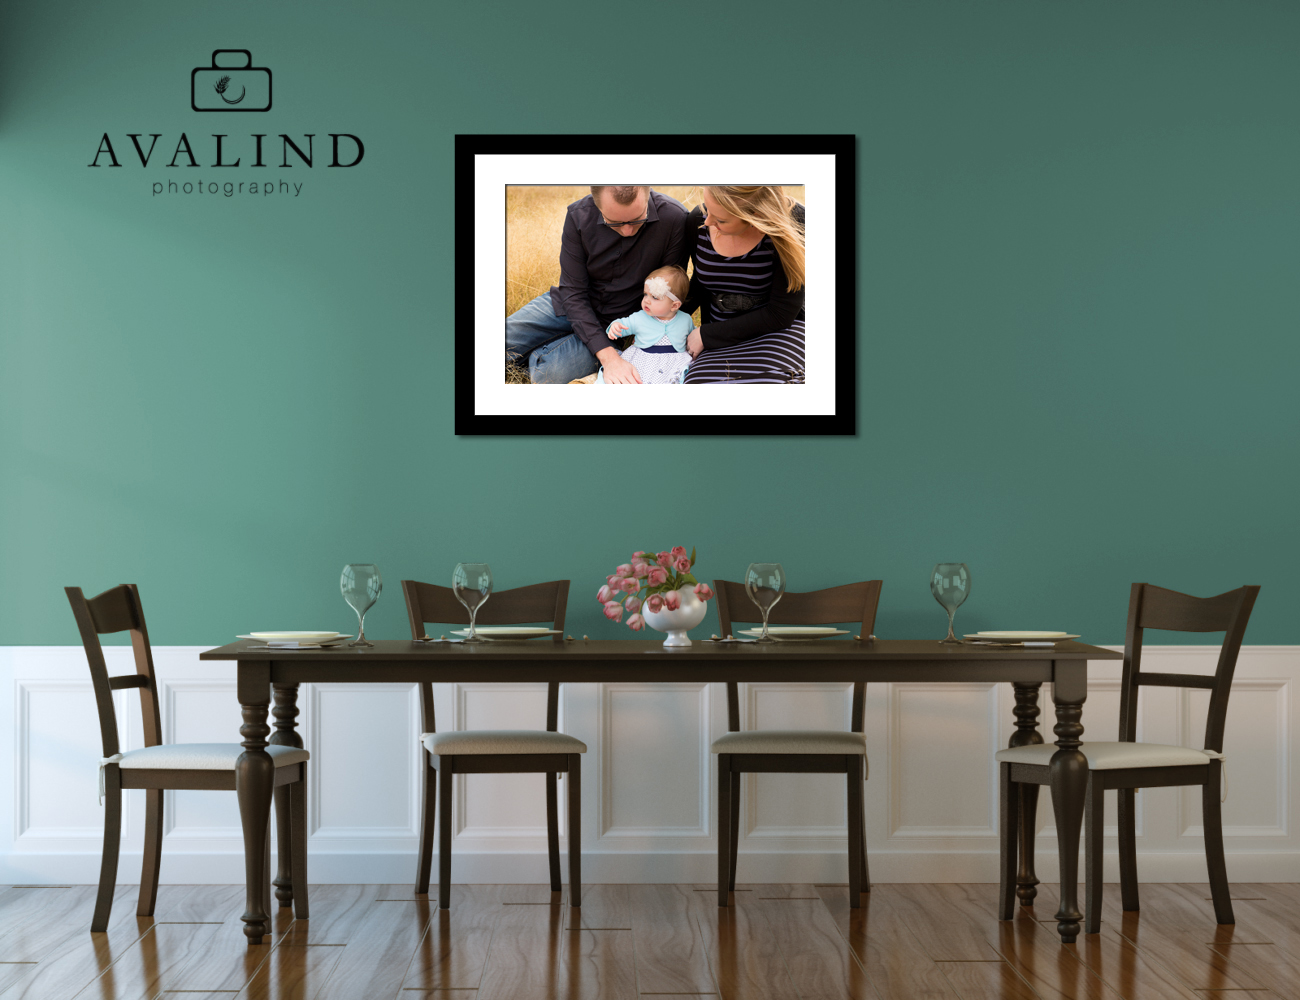 Wall single 20x30 frame.jpg